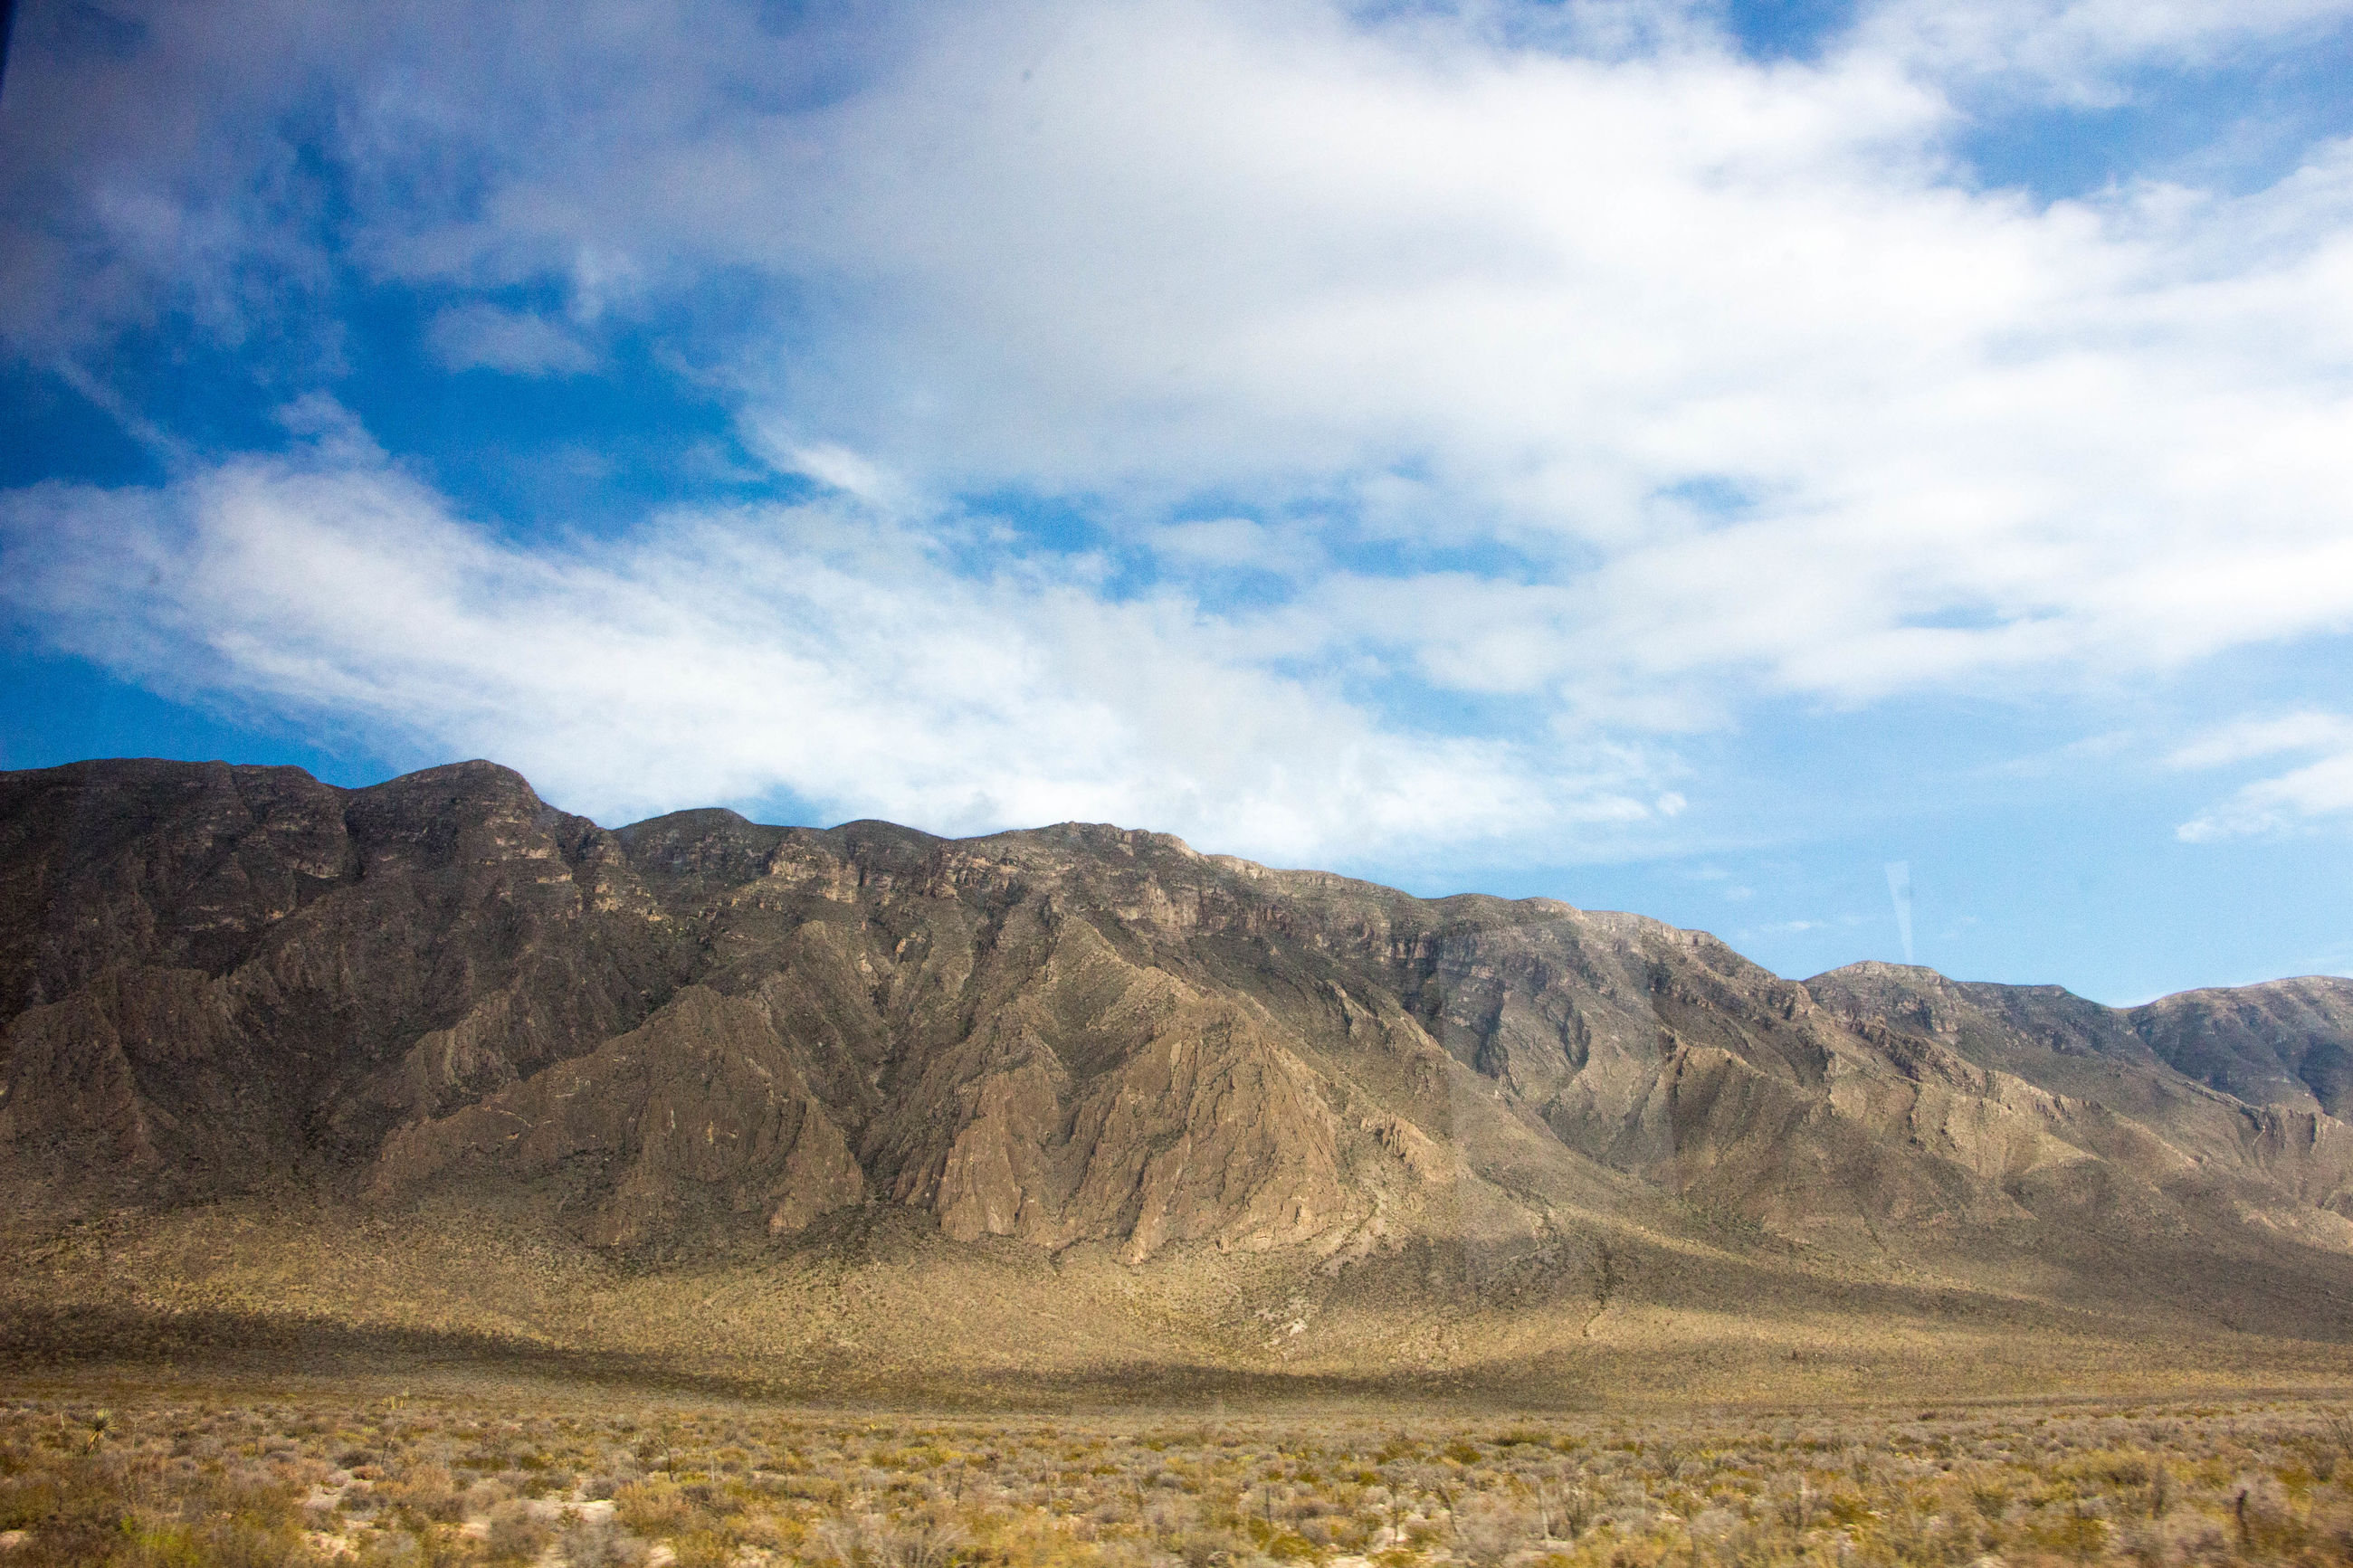 Mexico Coahuila Coahuila, México Mountains Mountains And Sky Mountain View Photooftheday Photographer Nature Cloud - Sky No People Landscape Sky Beauty In Nature Mountain Nature Photography Sky And Clouds Sunset_collection Wildlife Colors Relaxing Taking Photos Nature Green Color Climbing A Mountain